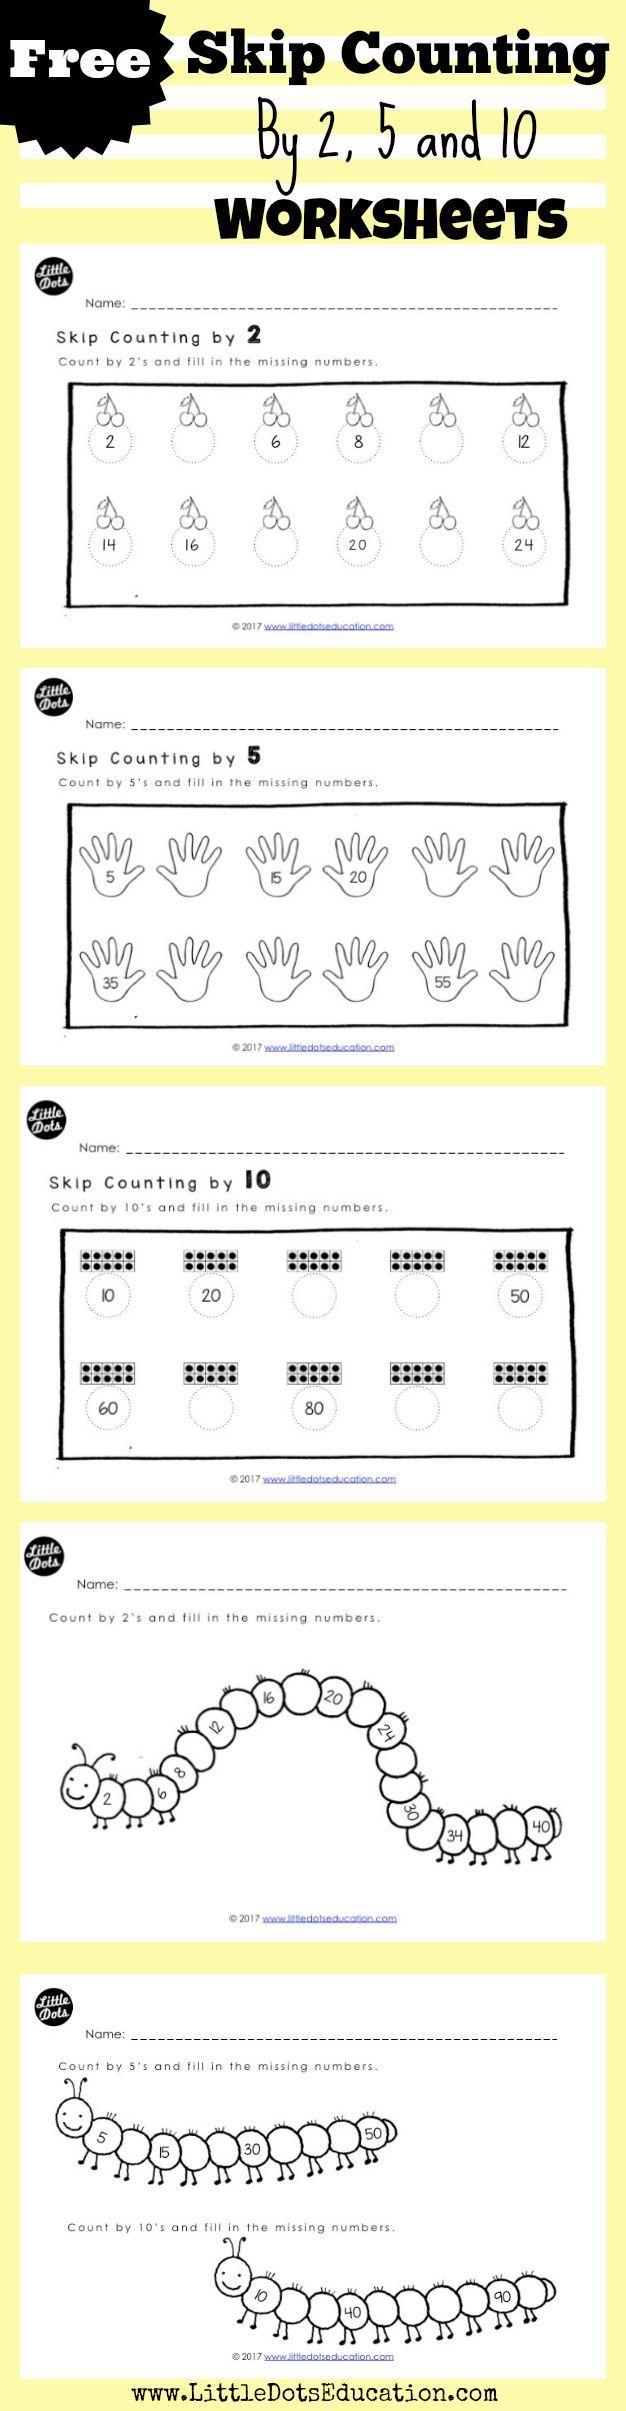 Free Skip Counting Worksheets And Activities For Kindergarten To